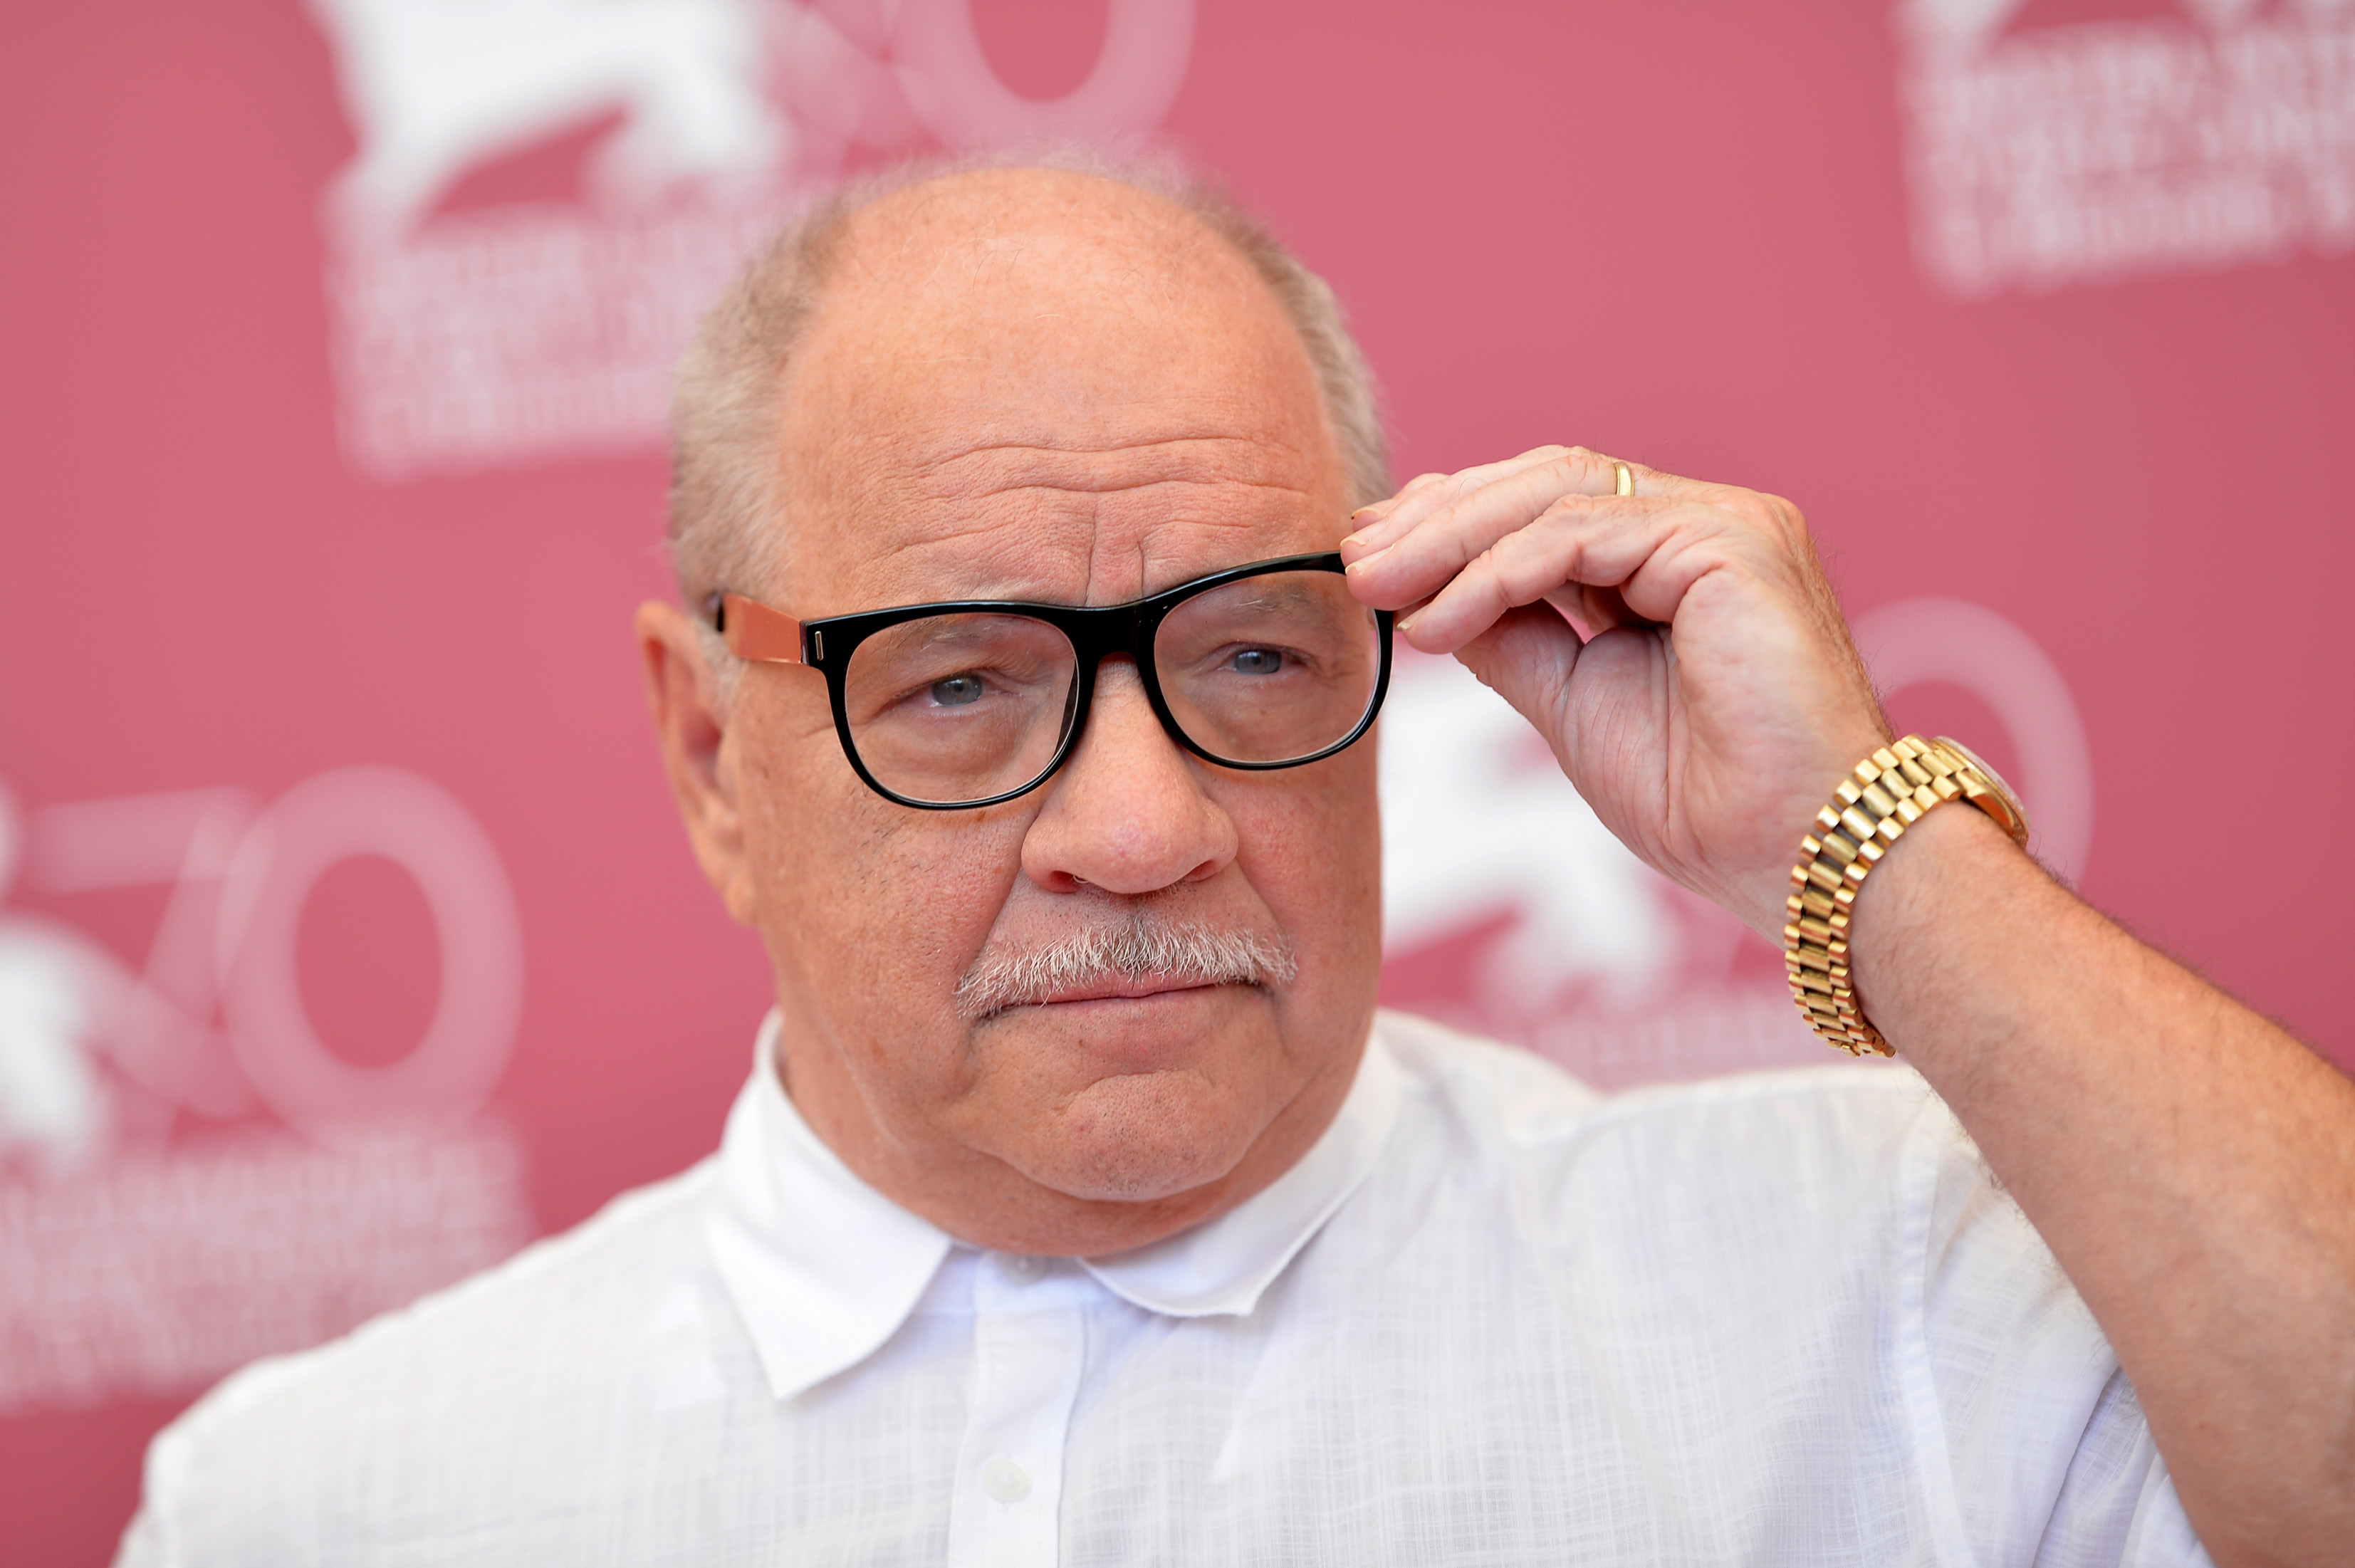 Paul Schrader Has Won More Than 2,100 Games of Words With Friends